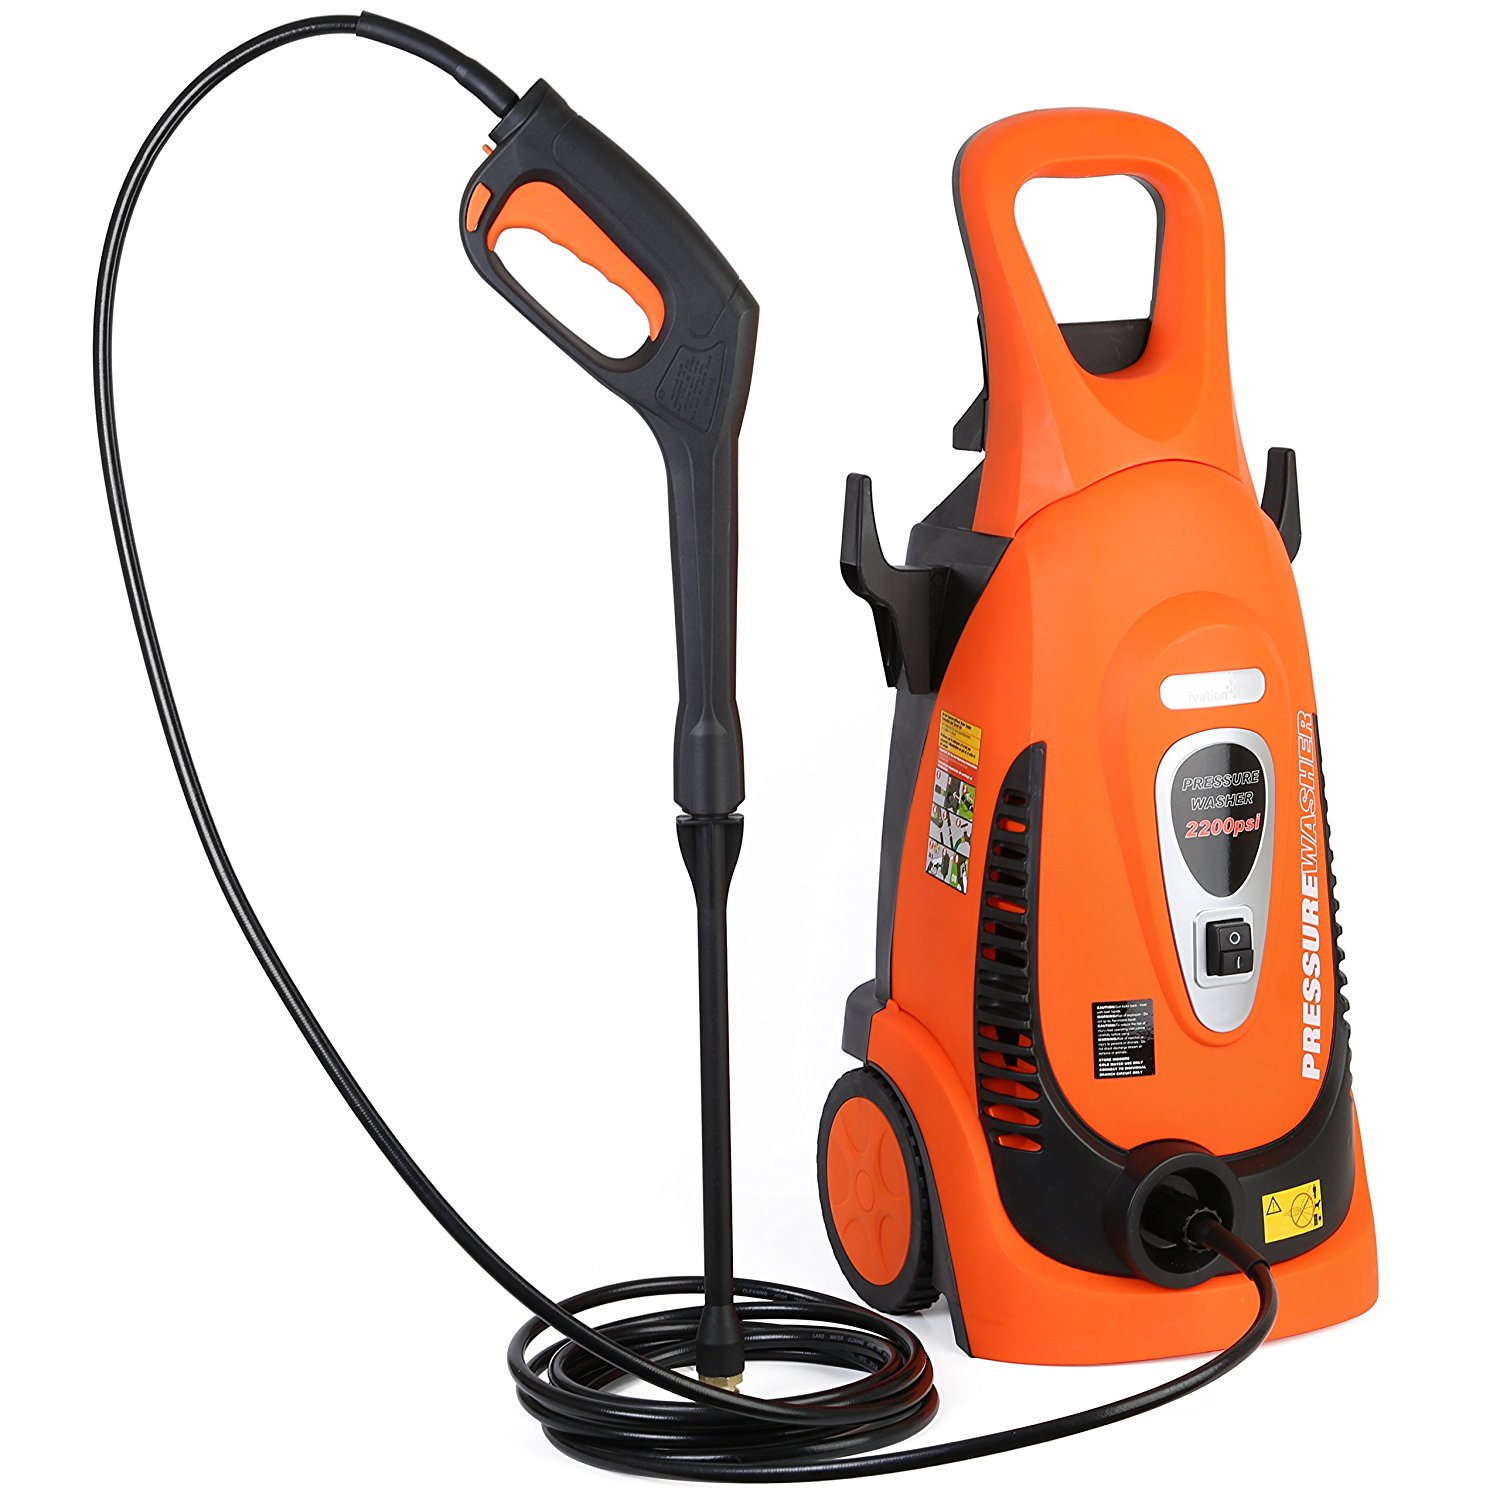 Pressure Washer Buying Guide- Tips to Choose & Buy Pressure Washer